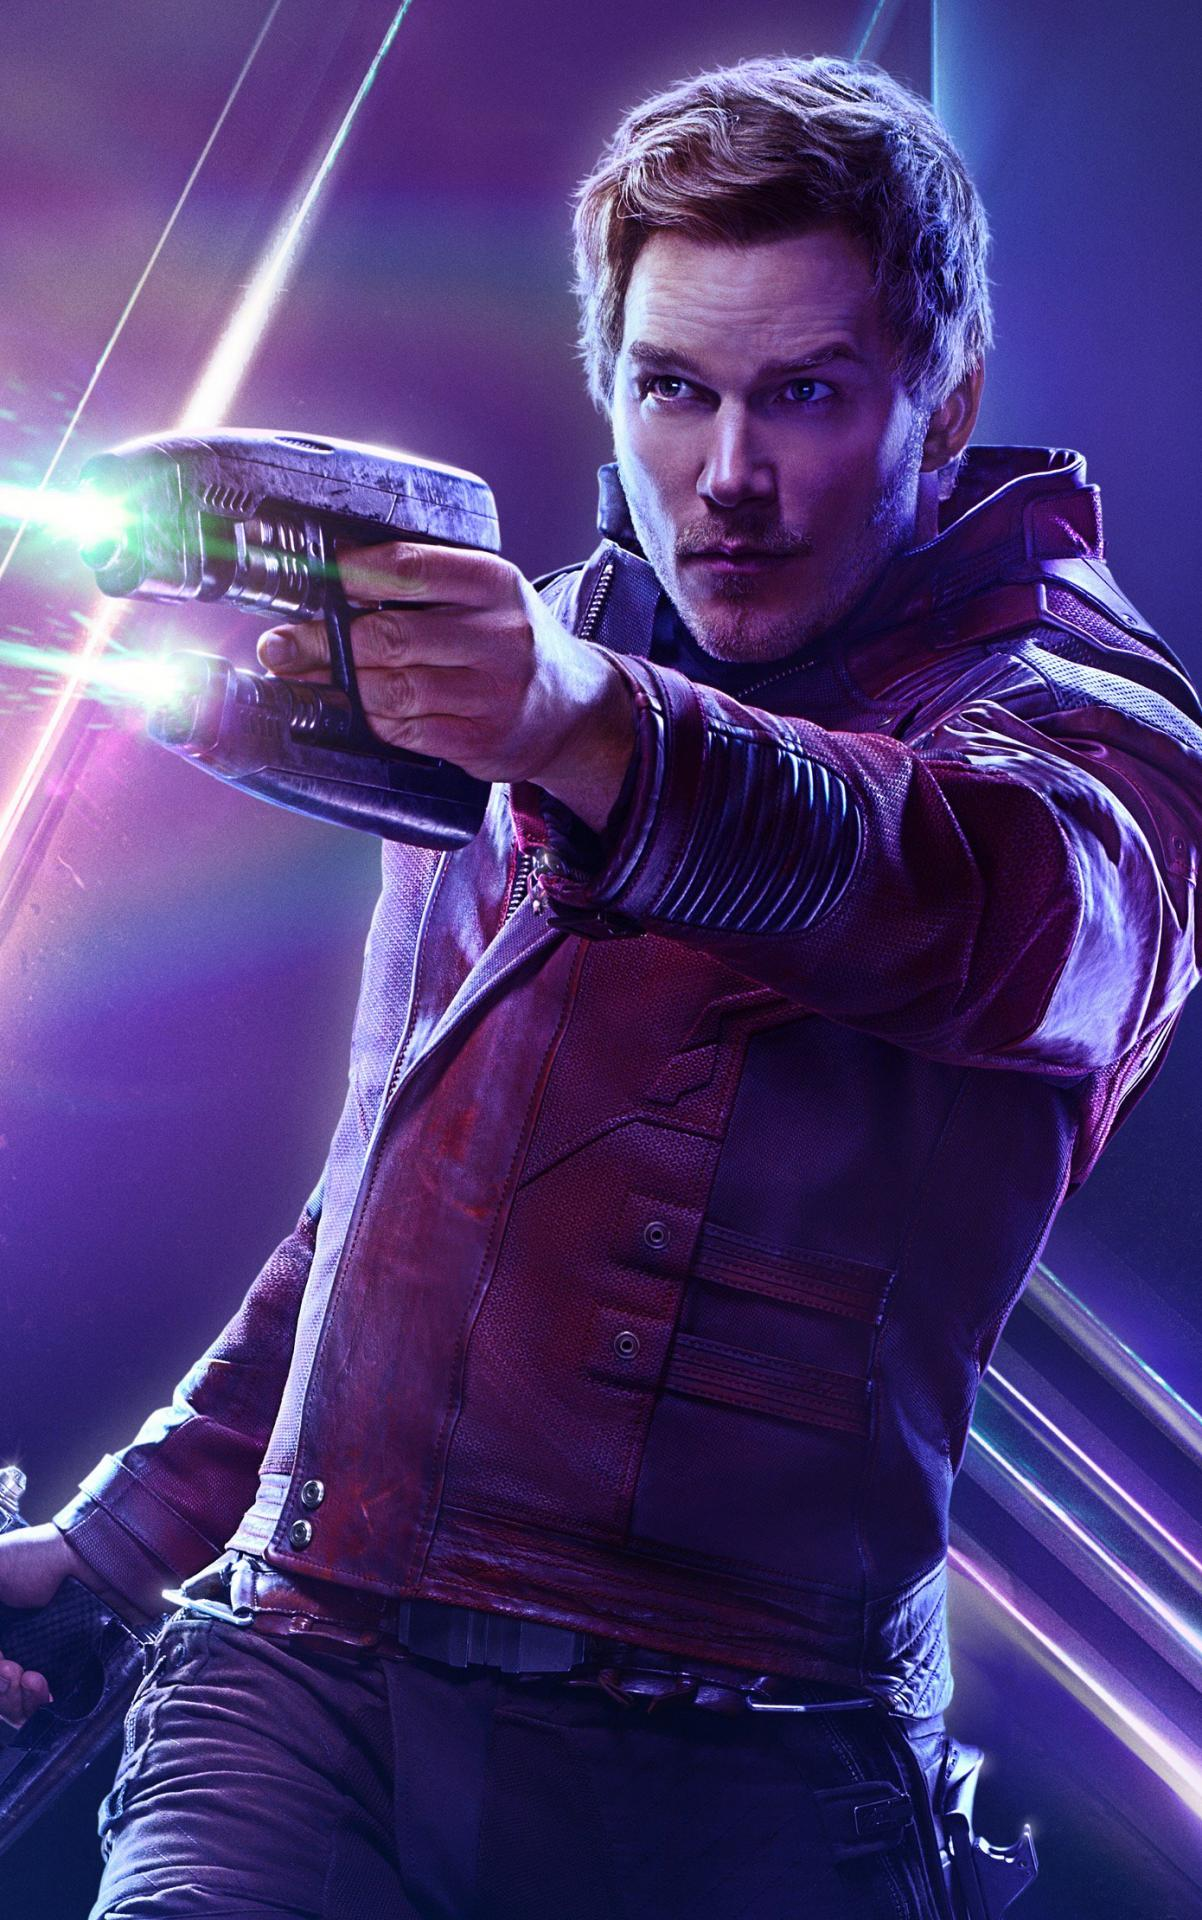 Avengers infinity war star lord poster